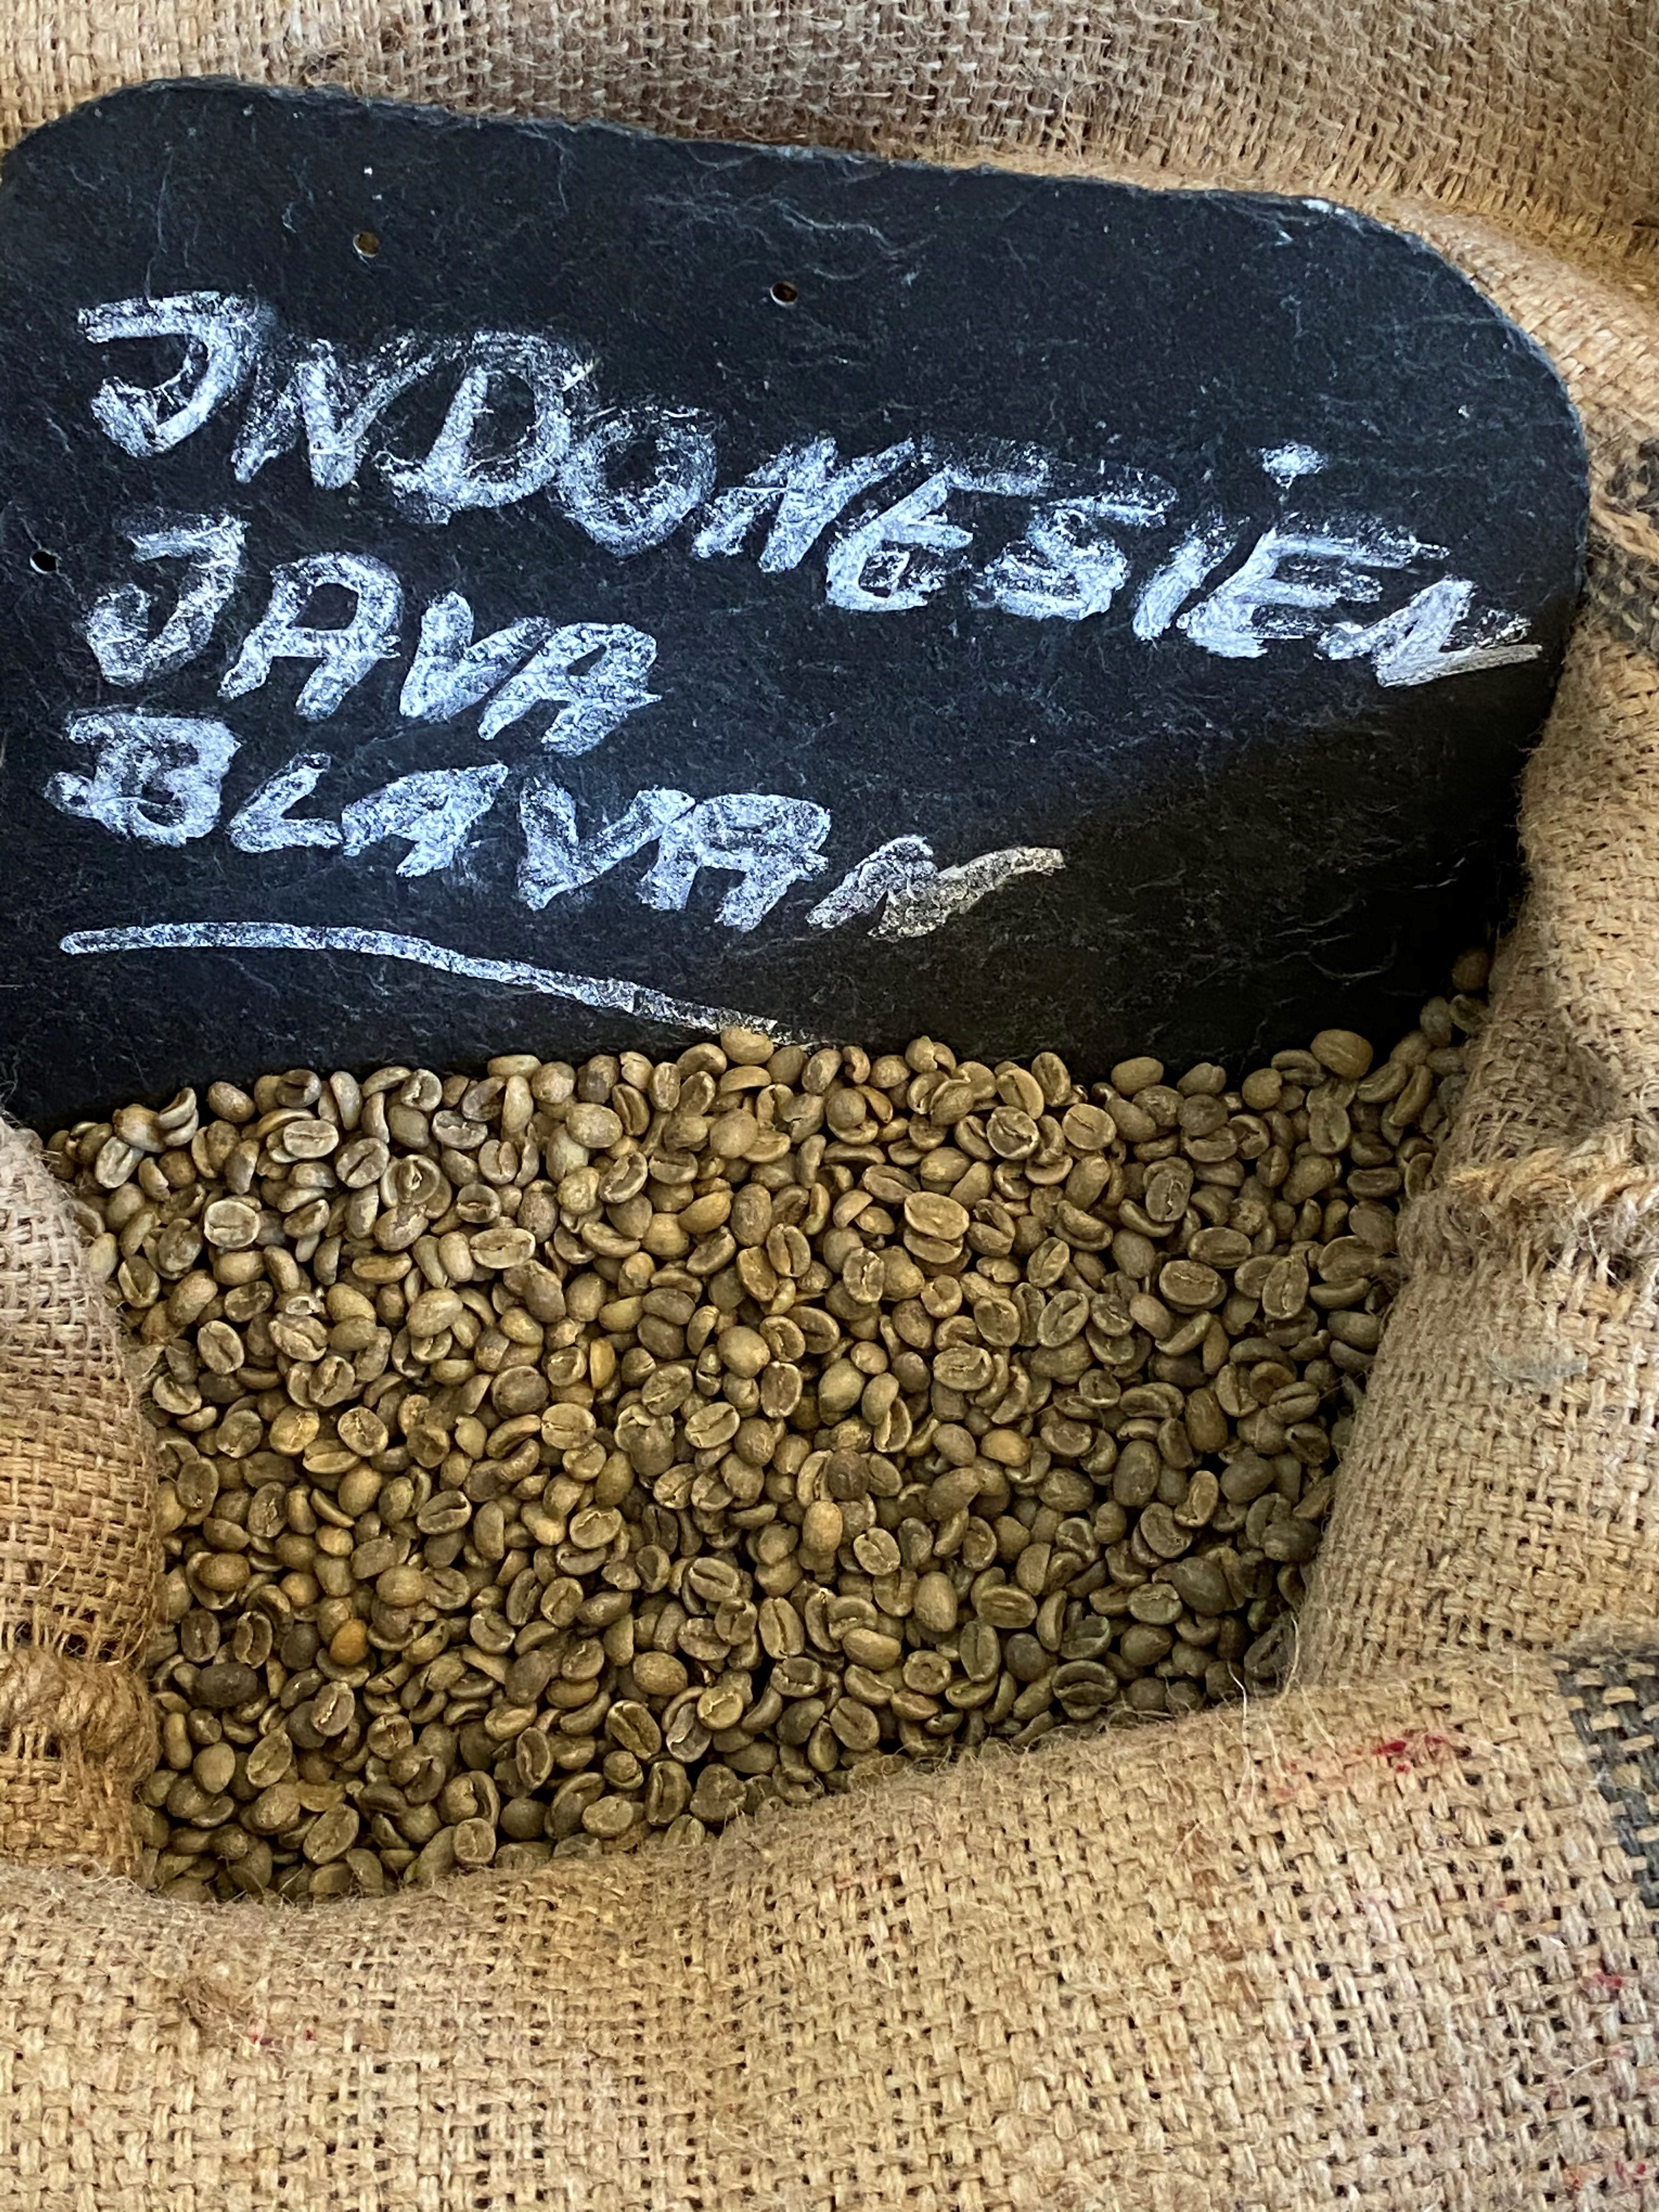 Indonesien Java Blawan